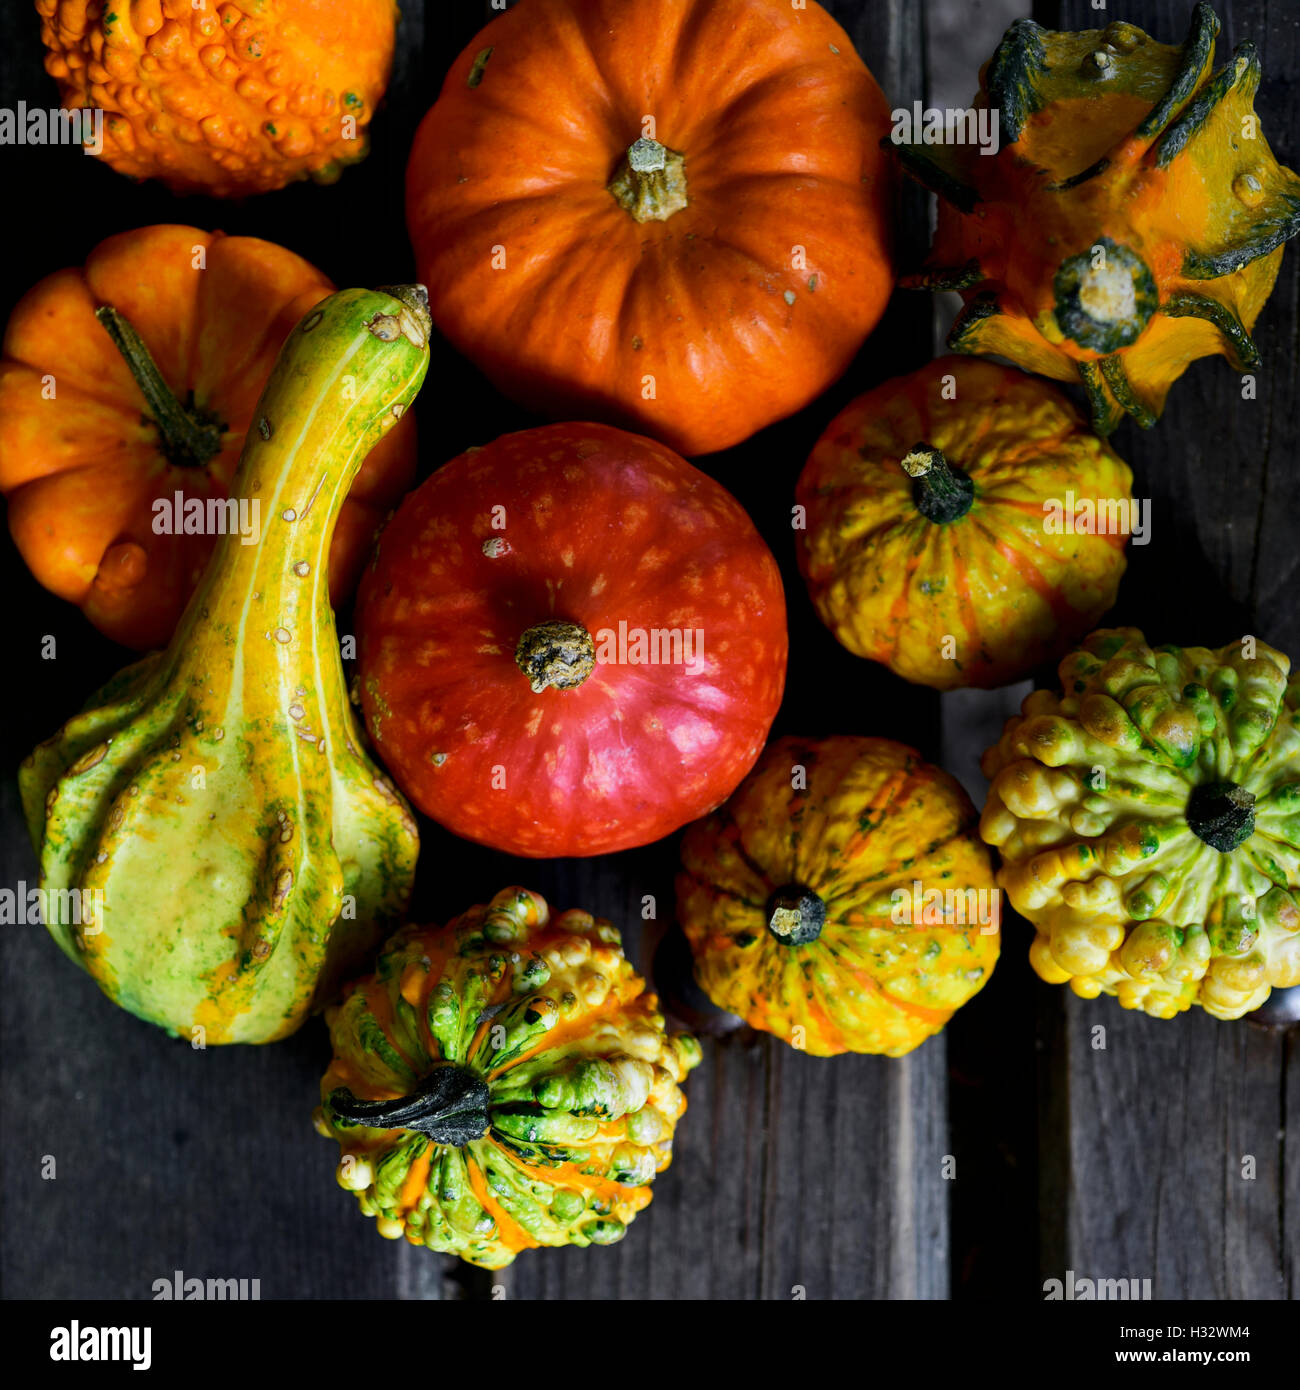 high-angle shot of some different pumpkins on a rustic wooden slates surface - Stock Image